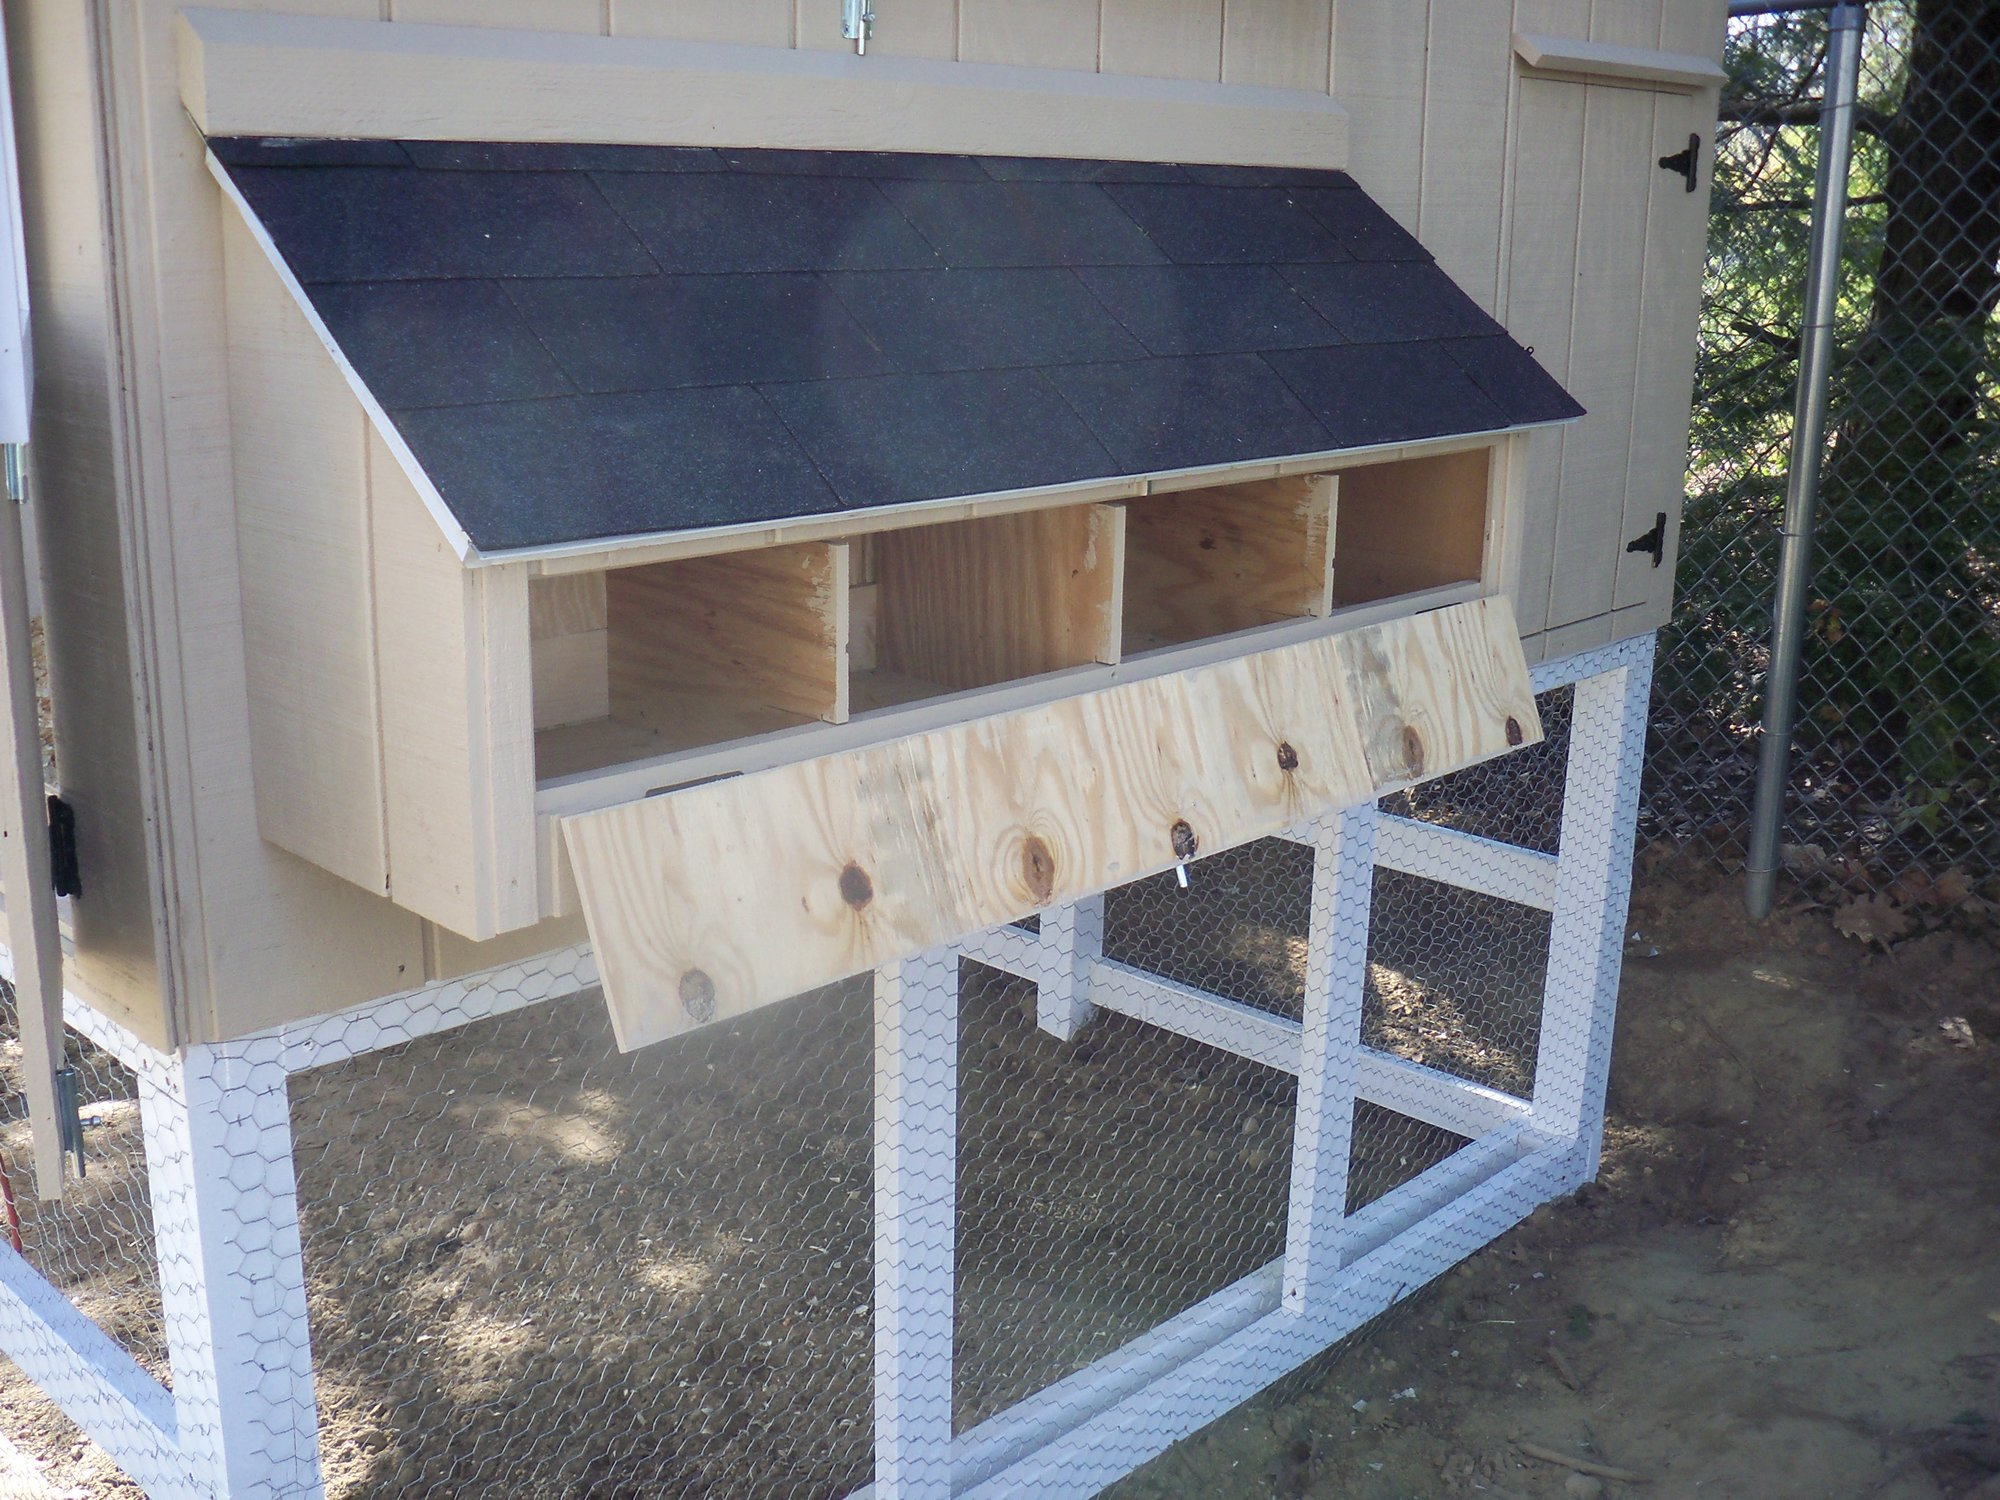 pictures-of-chicken-nesting-boxes-how-to-build-a-nest-box.jpg